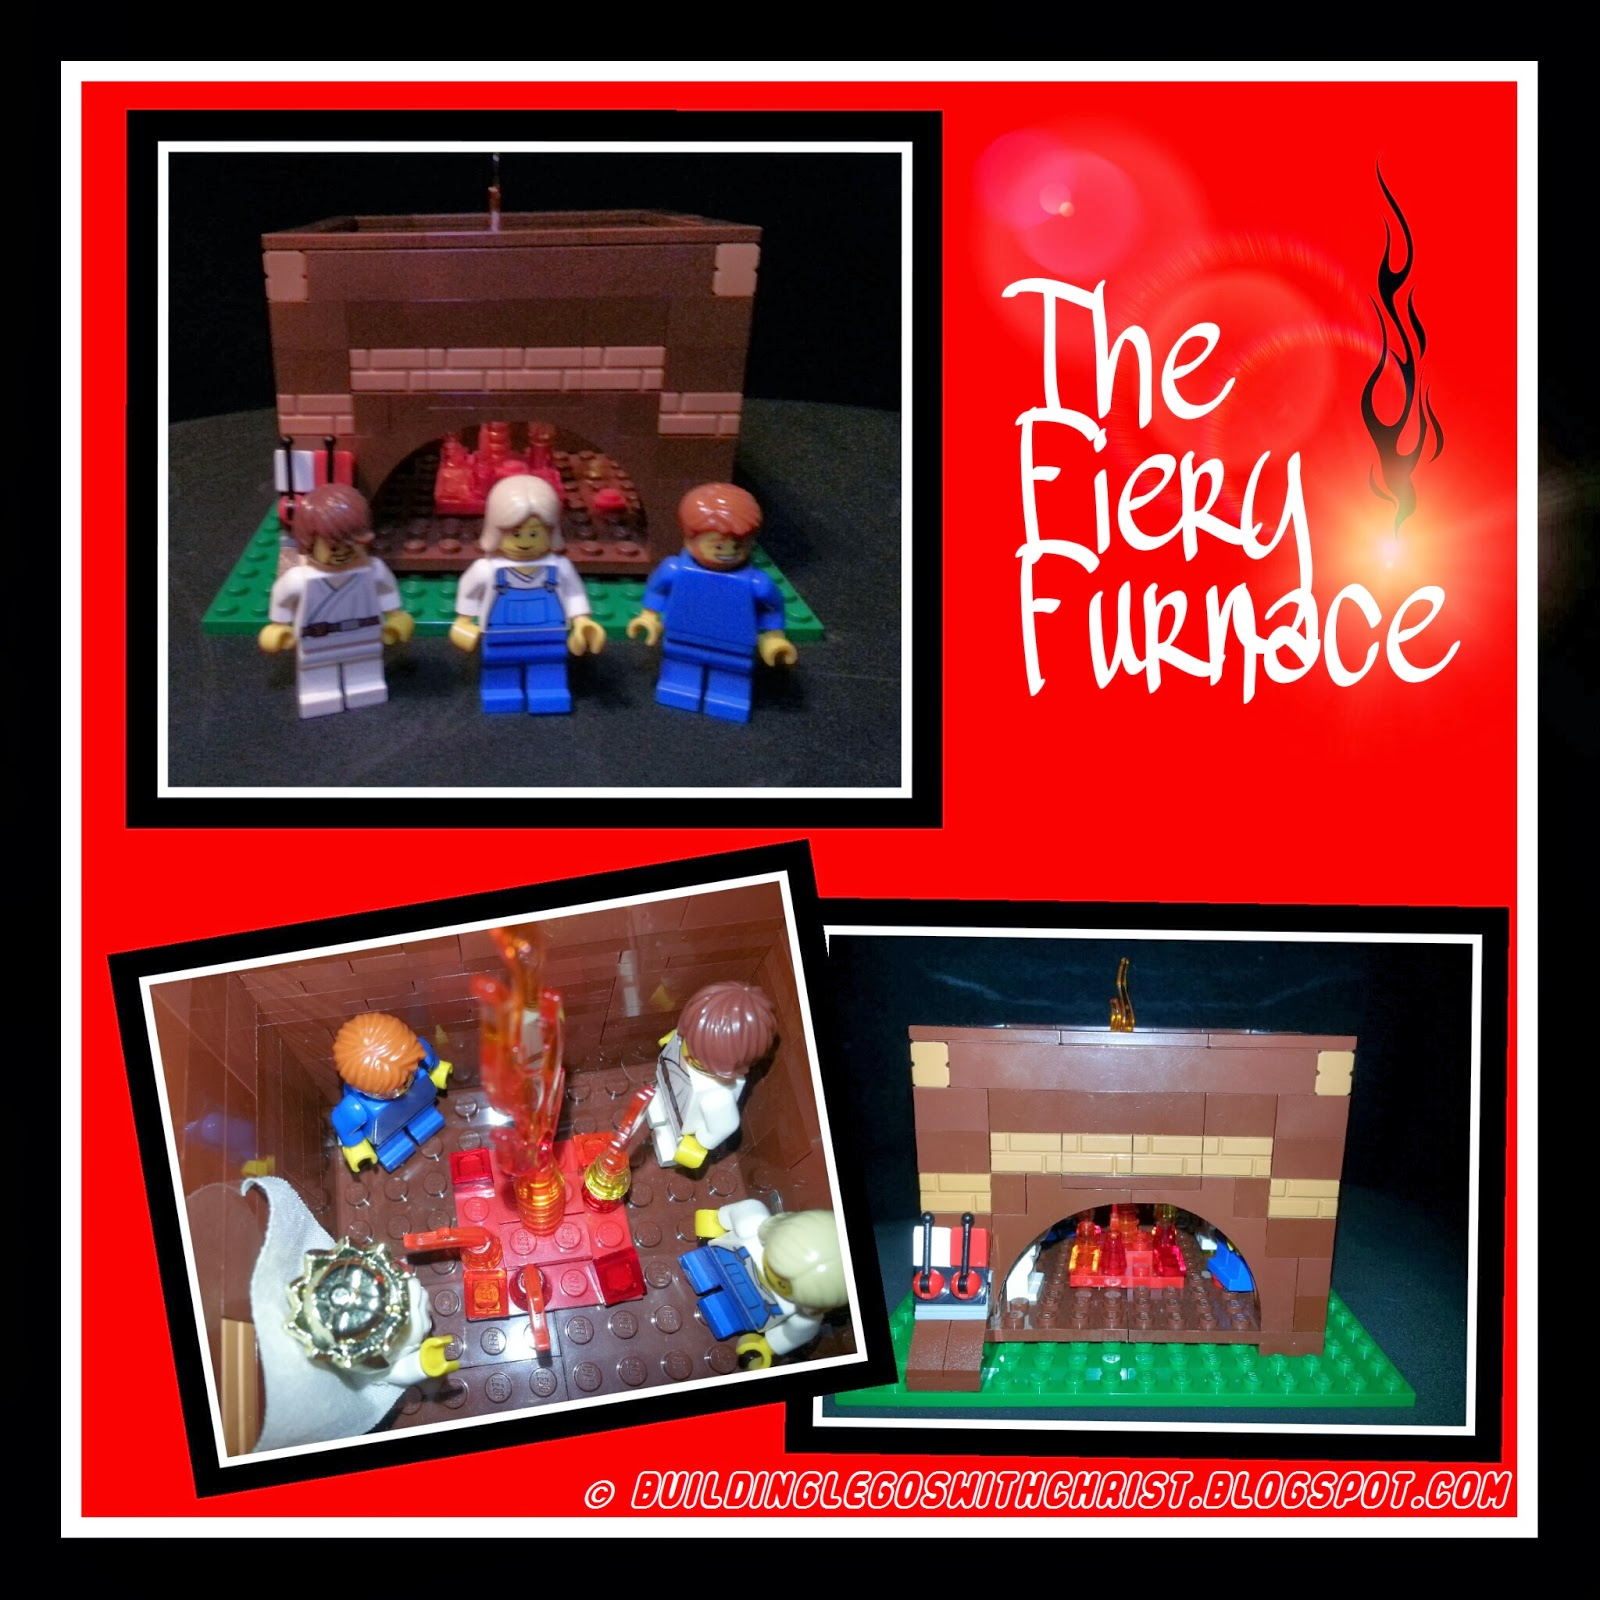 building legos with christ the fiery furnace lego style